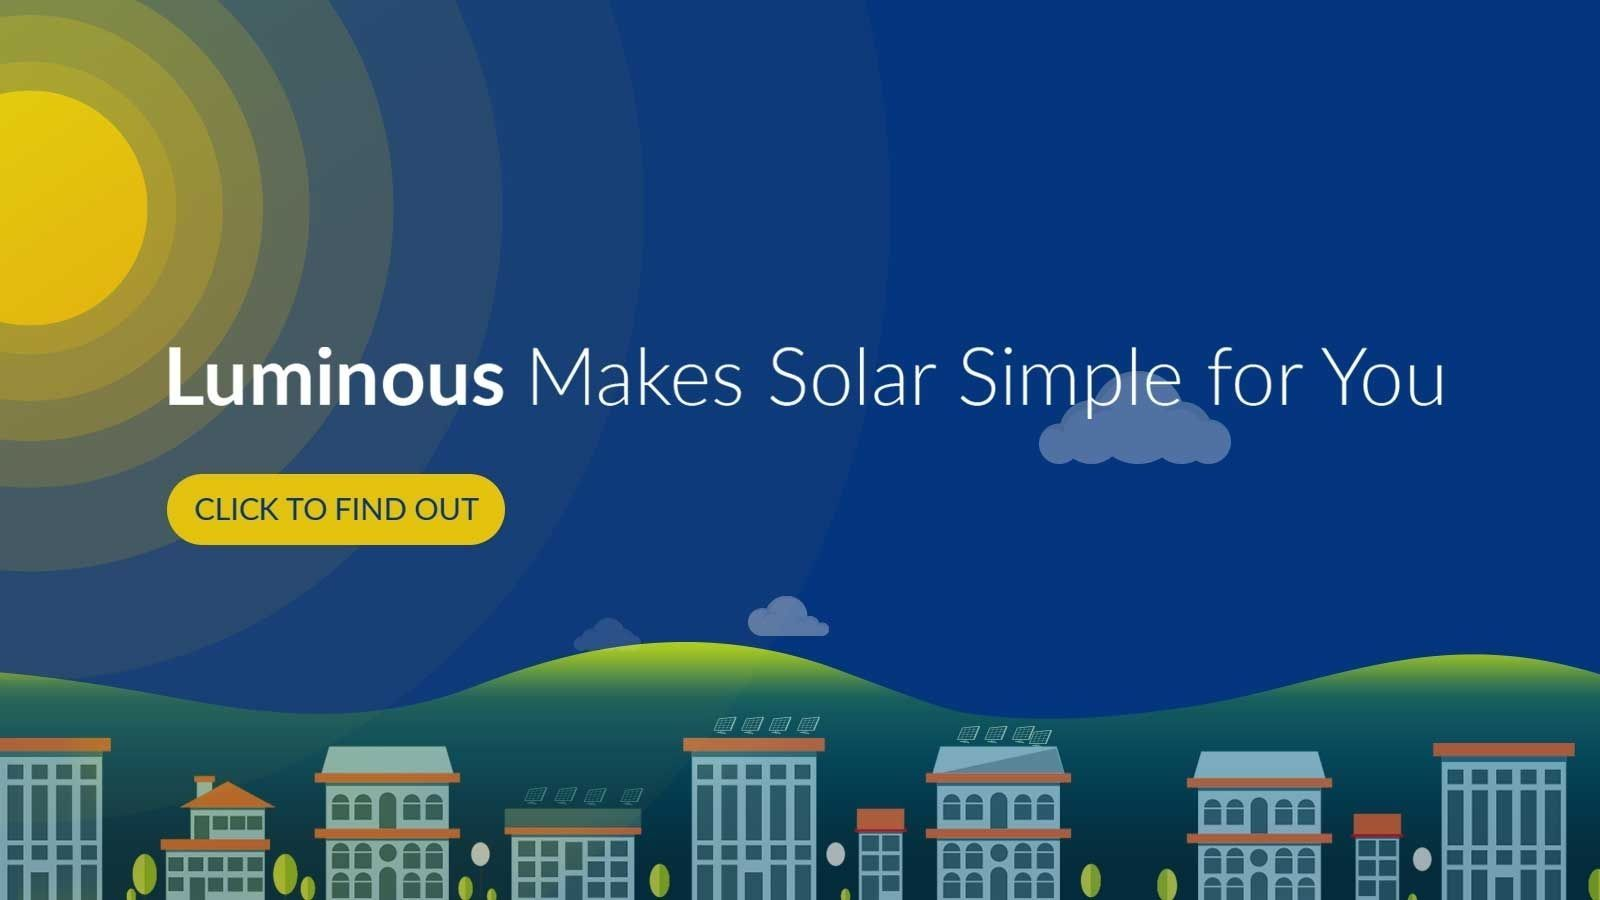 Luminous makes solar simple for you